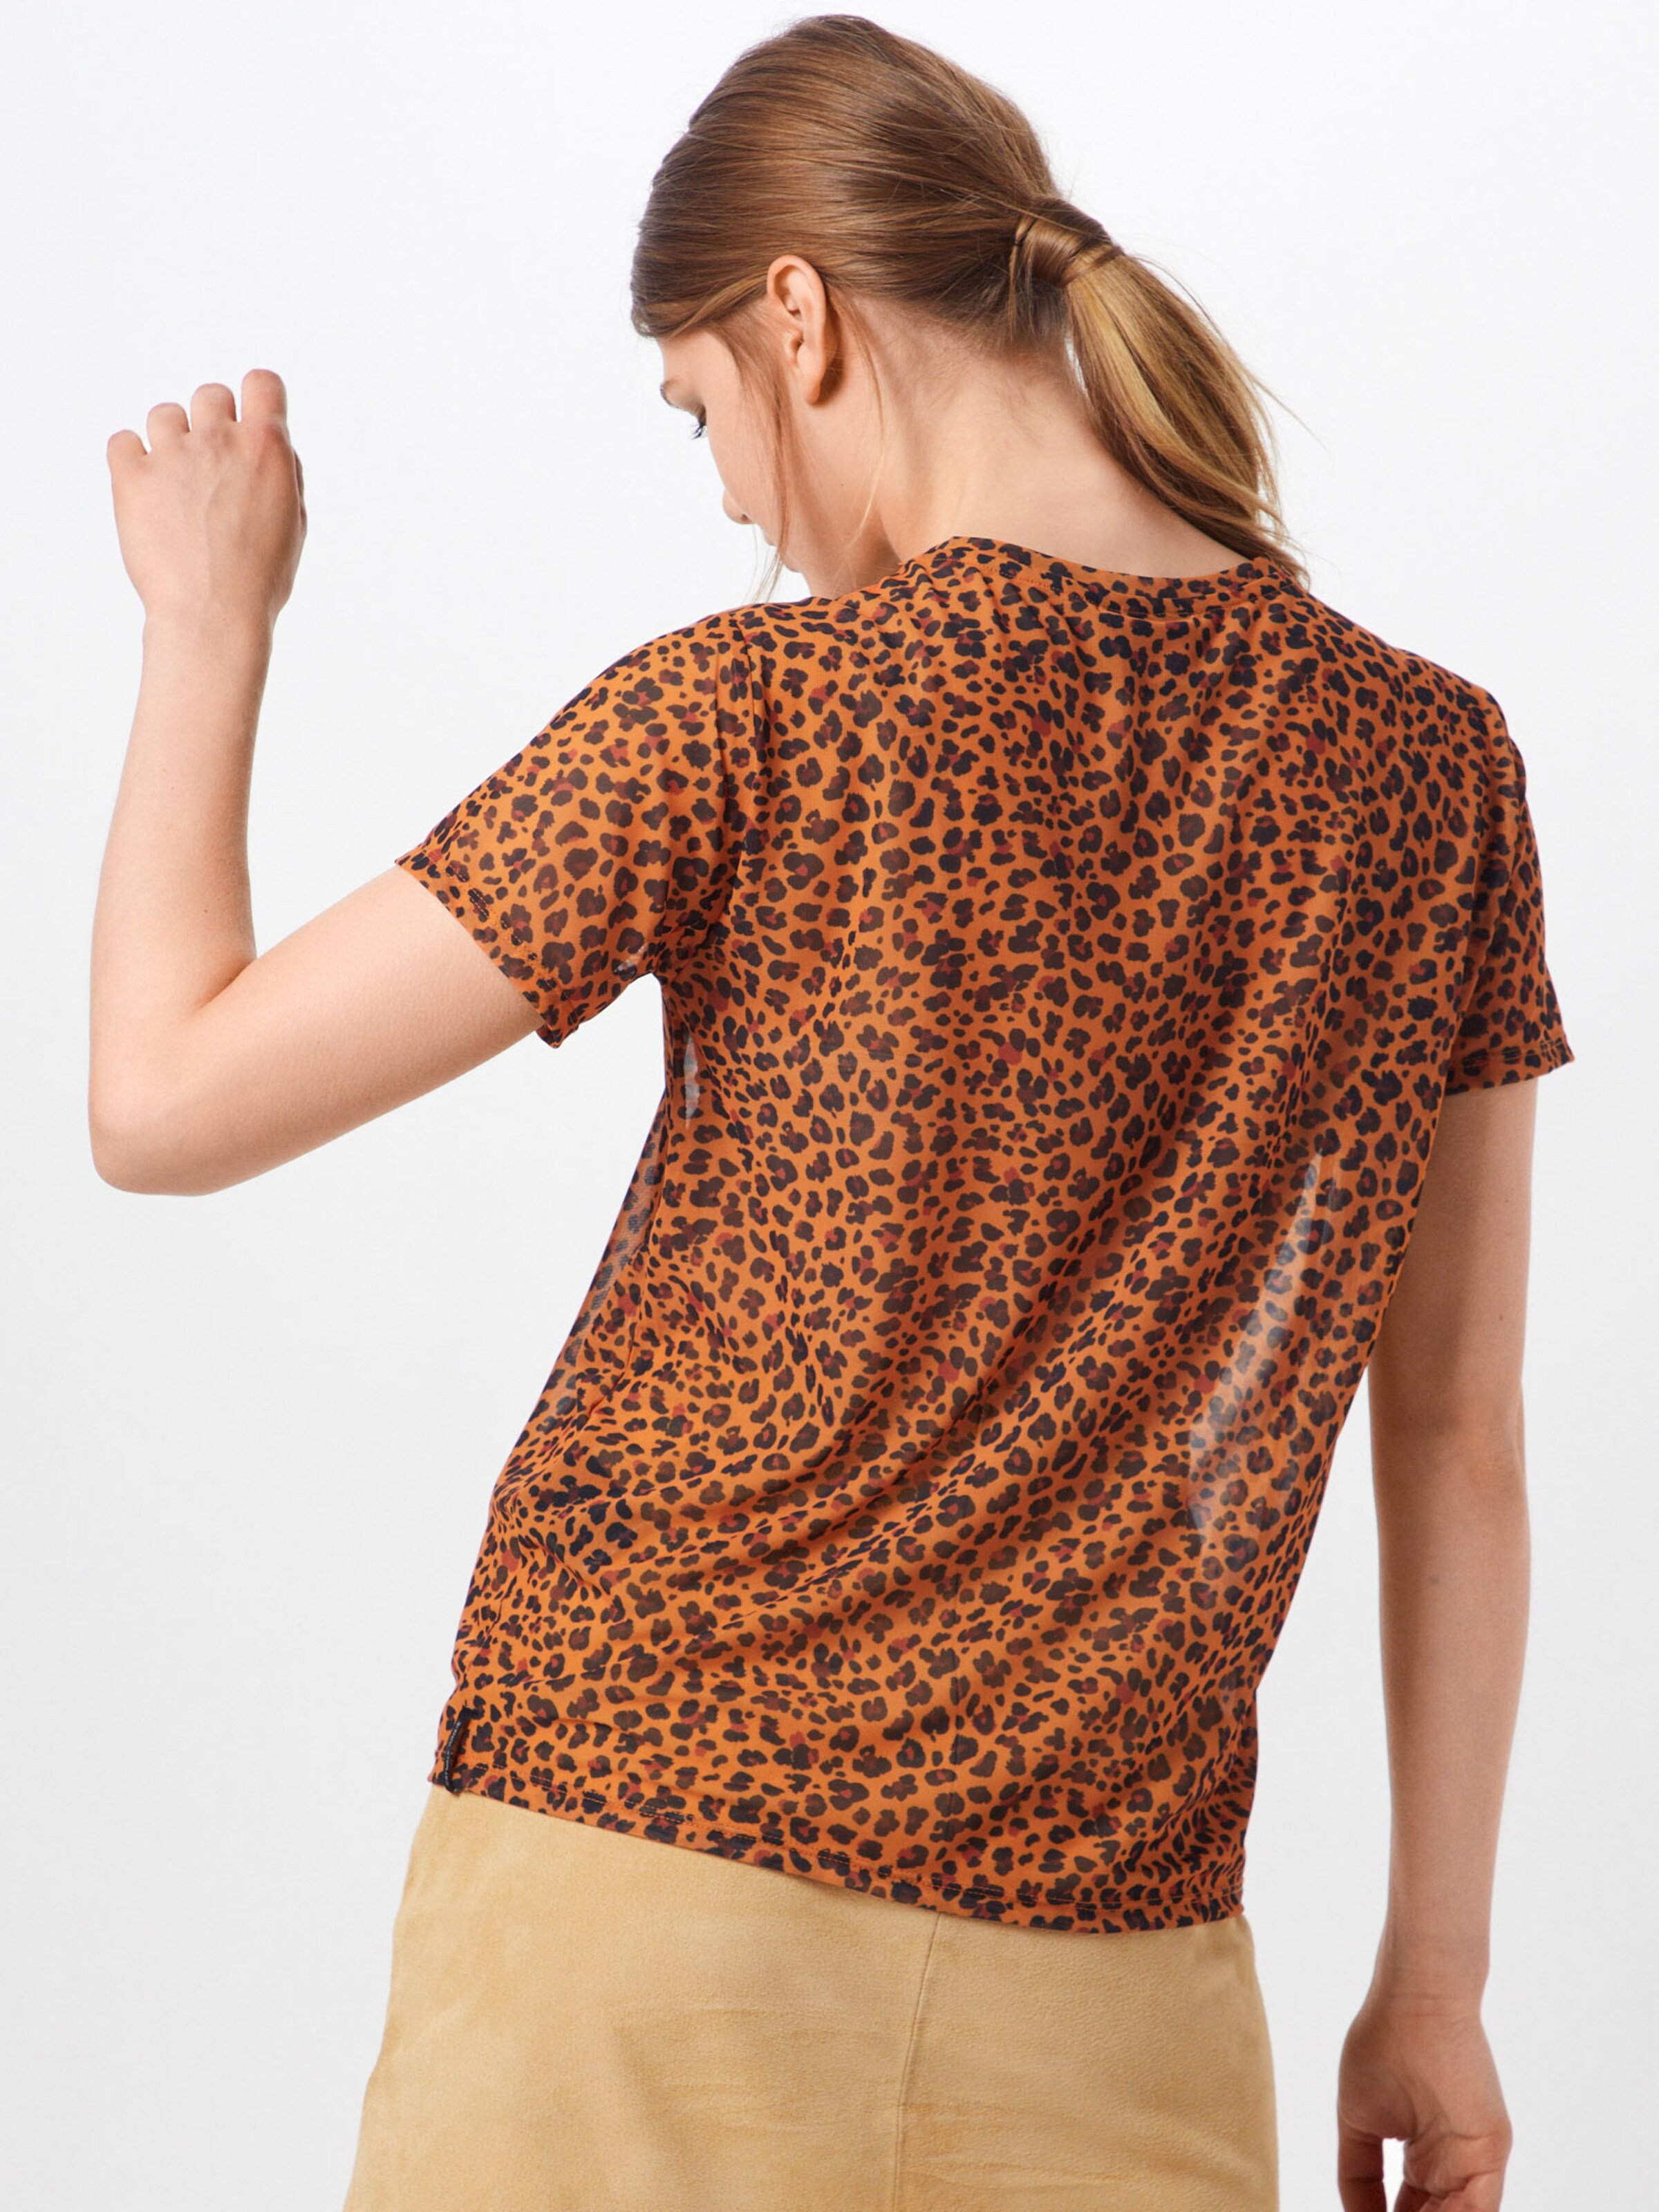 shirt T Catwalk 'ts En Golden Cheetah' Marron Junkie AjL35q4R